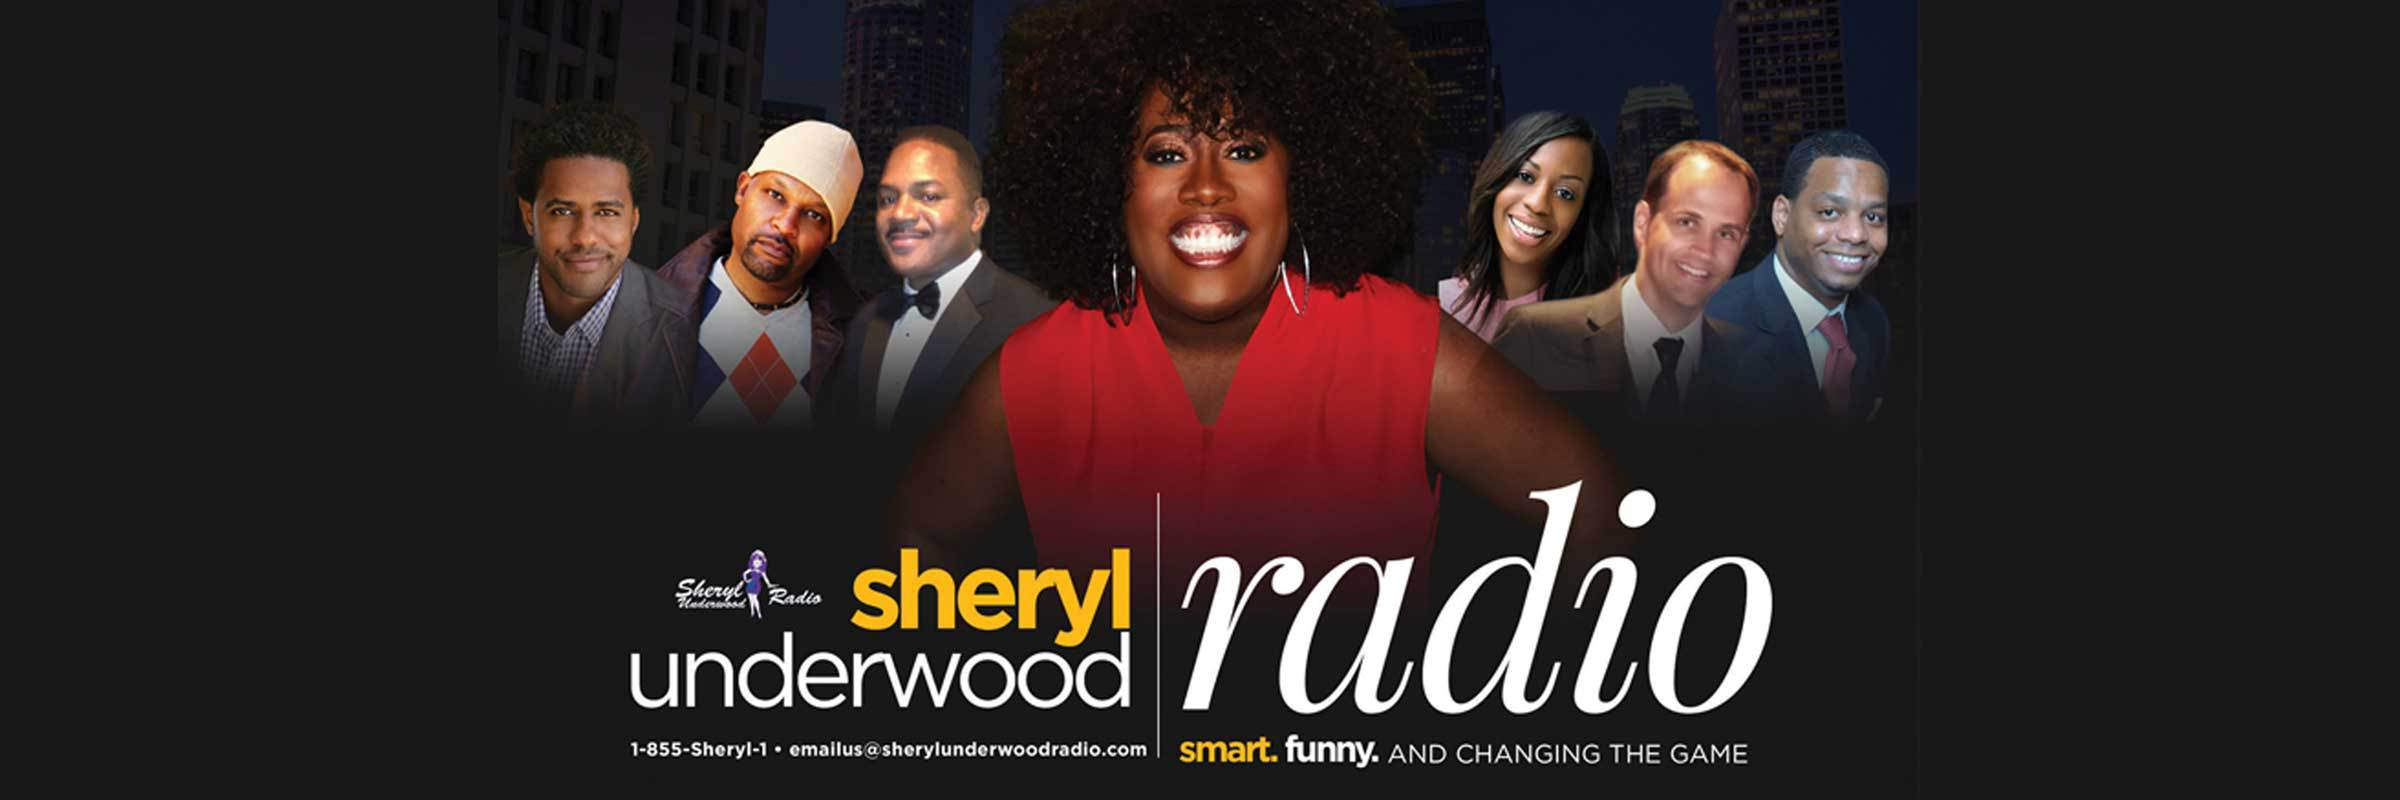 Sheryl Underwood Radio. Smart. Funny. And Changing The Game.